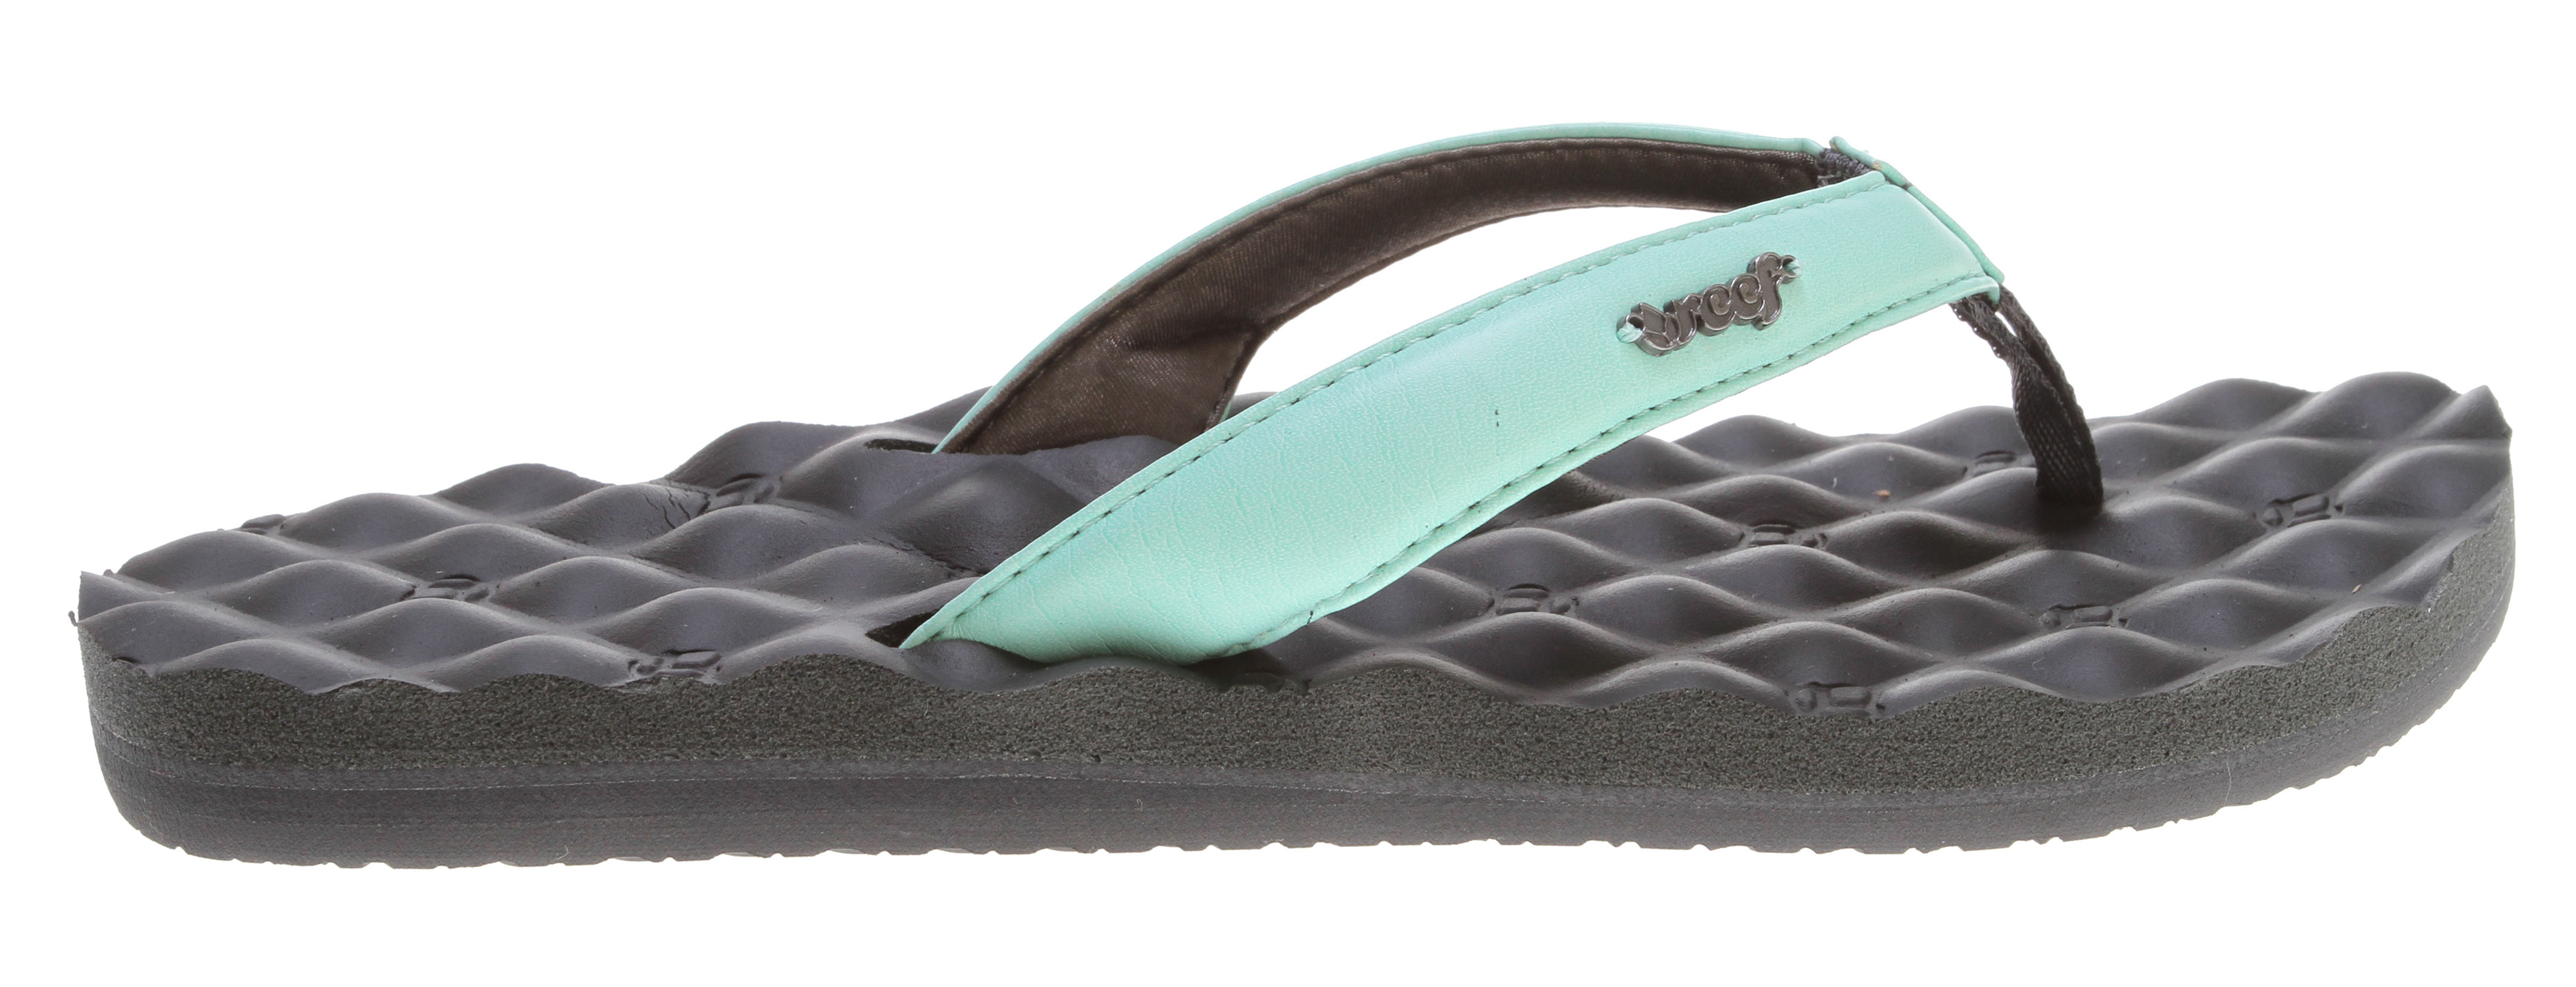 Surf Key Features of the Reef Dreams Sandals: So comfortable it's like you never left your bed Synthetic strap lined with soft padded satin mattress-inspired quilted pu foam footbed with anatomical arch support Rubber sponge outsole for flexibility Pvc free - $21.95